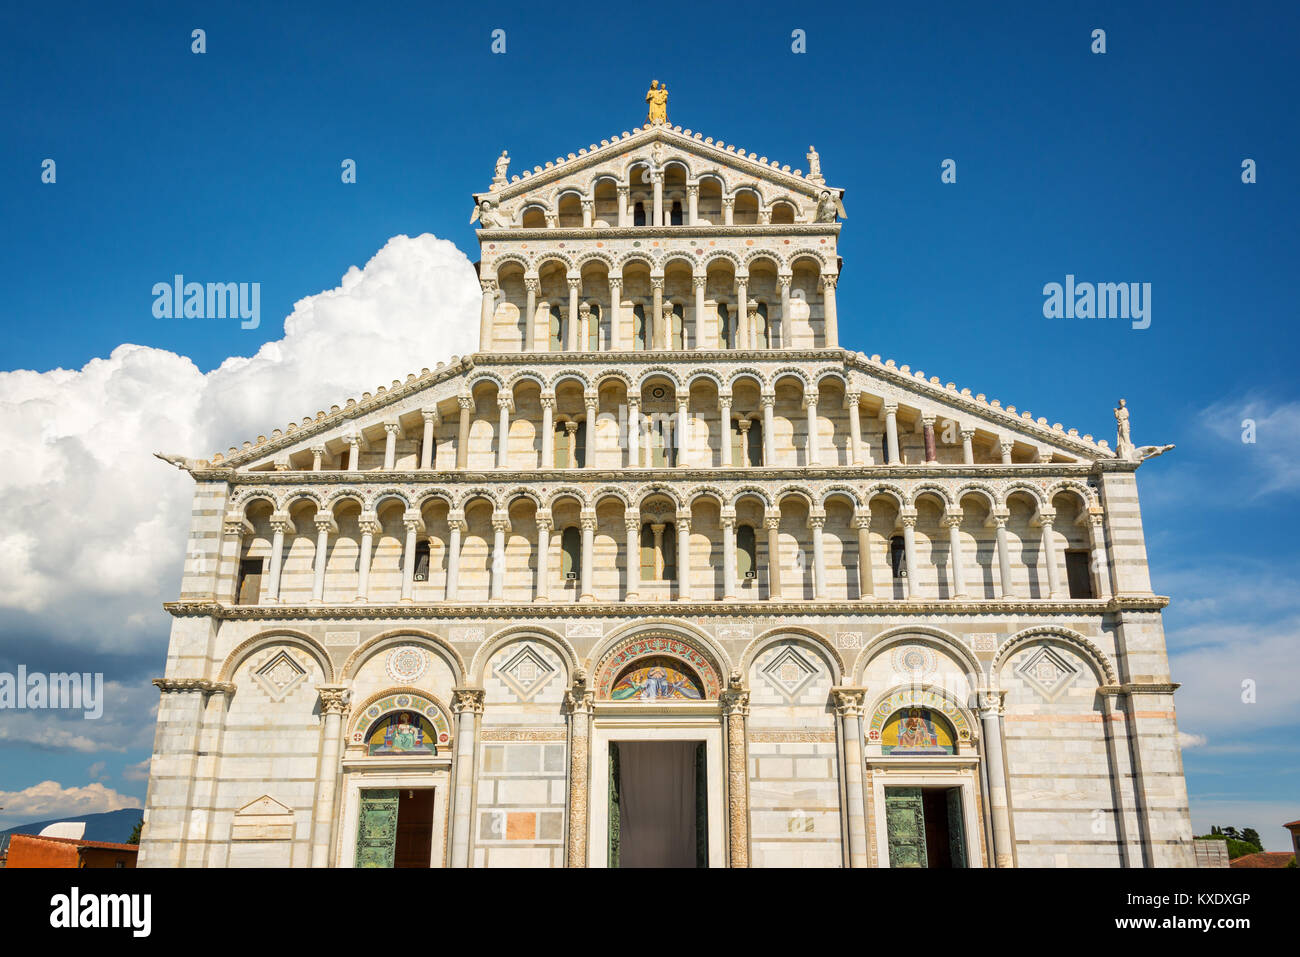 Facade of the cathedral (Duomo) in Pisa, Tuscany, Italy - Stock Image